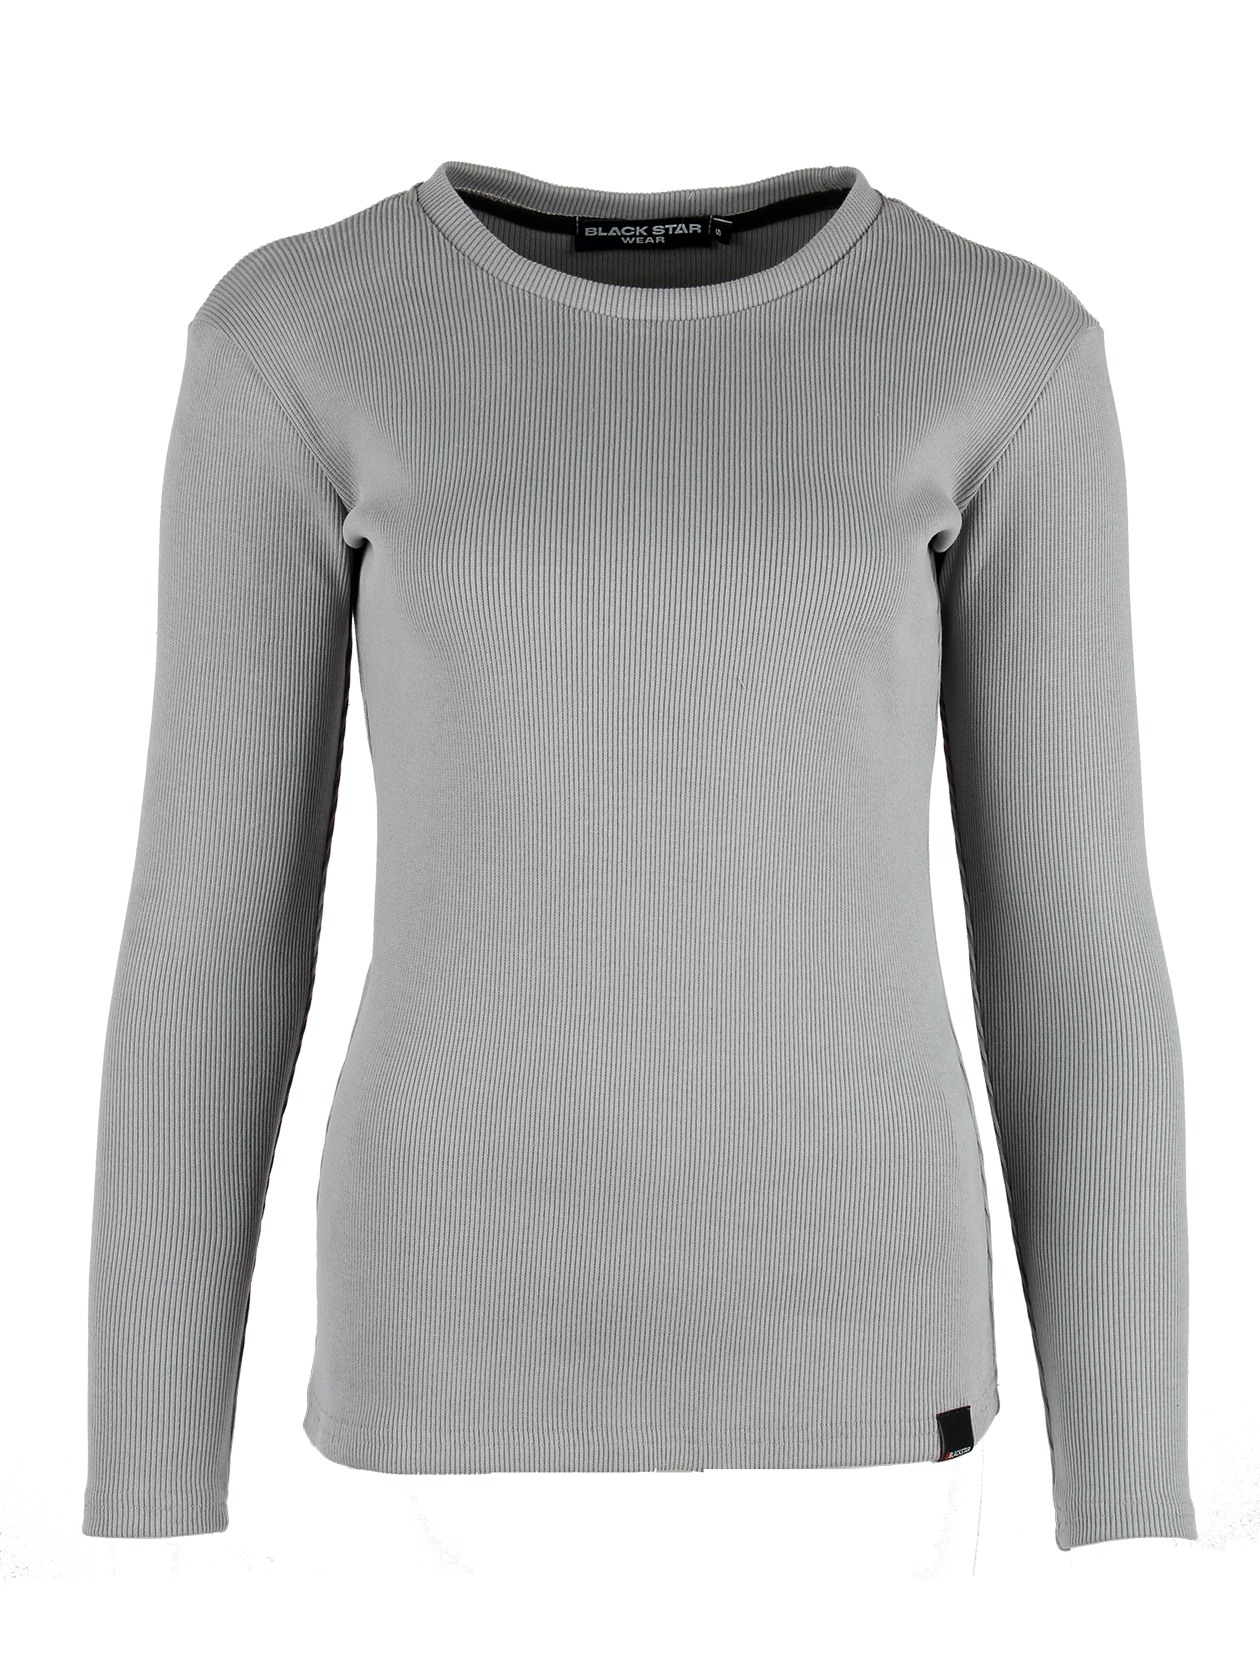 Womens long sleeve t-shirt BasicWomens long sleeve t-shirt by Black Star Wear. Slim fit, o-neck, lond sleeves. Small black label with #blackstar on the front. Natural cotton (90%) and lycra (10%) blend.<br><br>size: L<br>color: Grey<br>gender: female